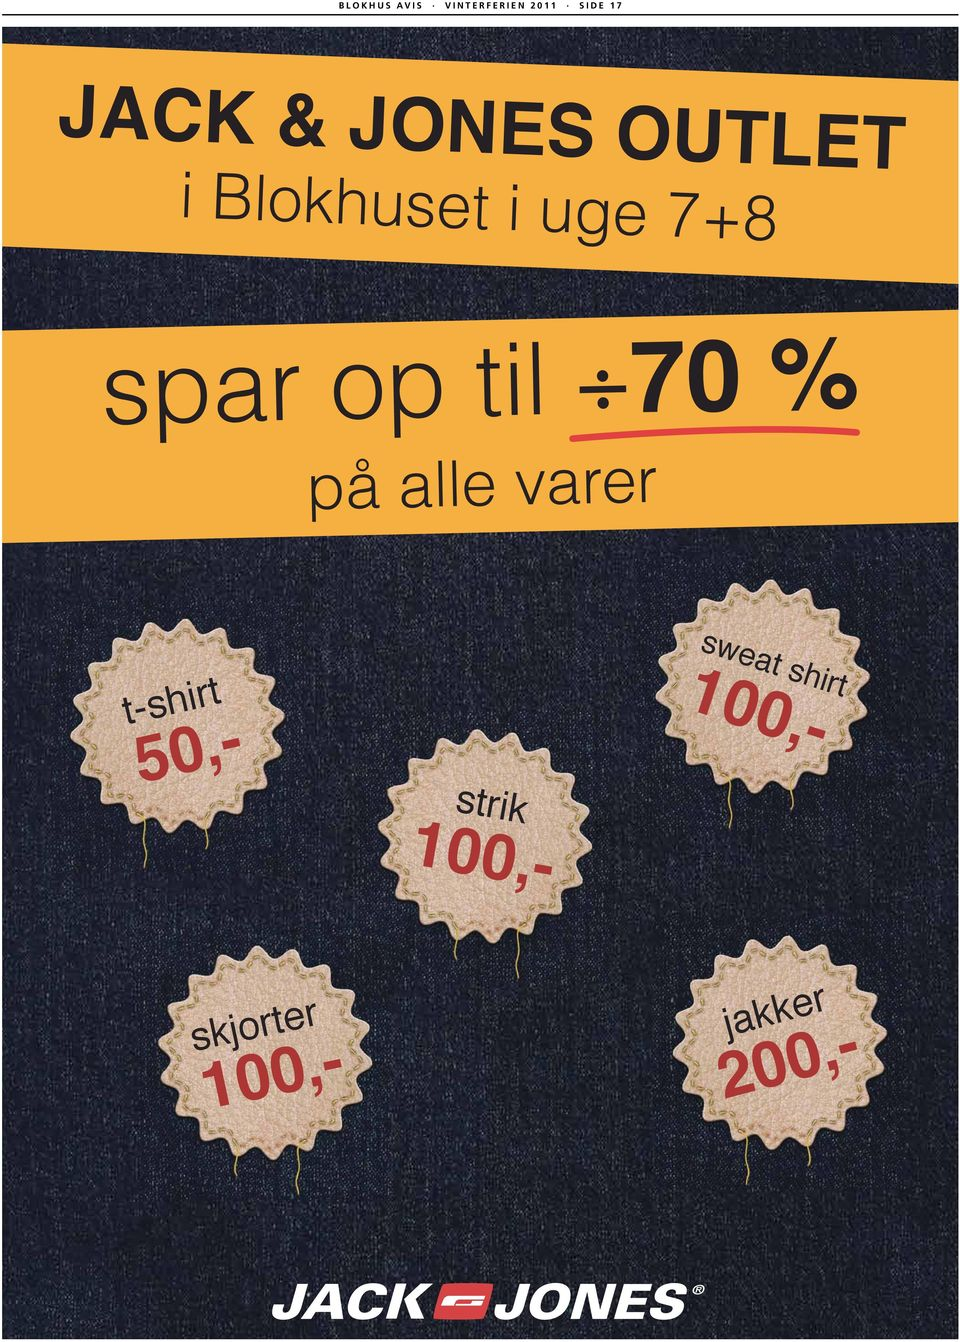 til 70 % på alle varer t-shirt strik sweat